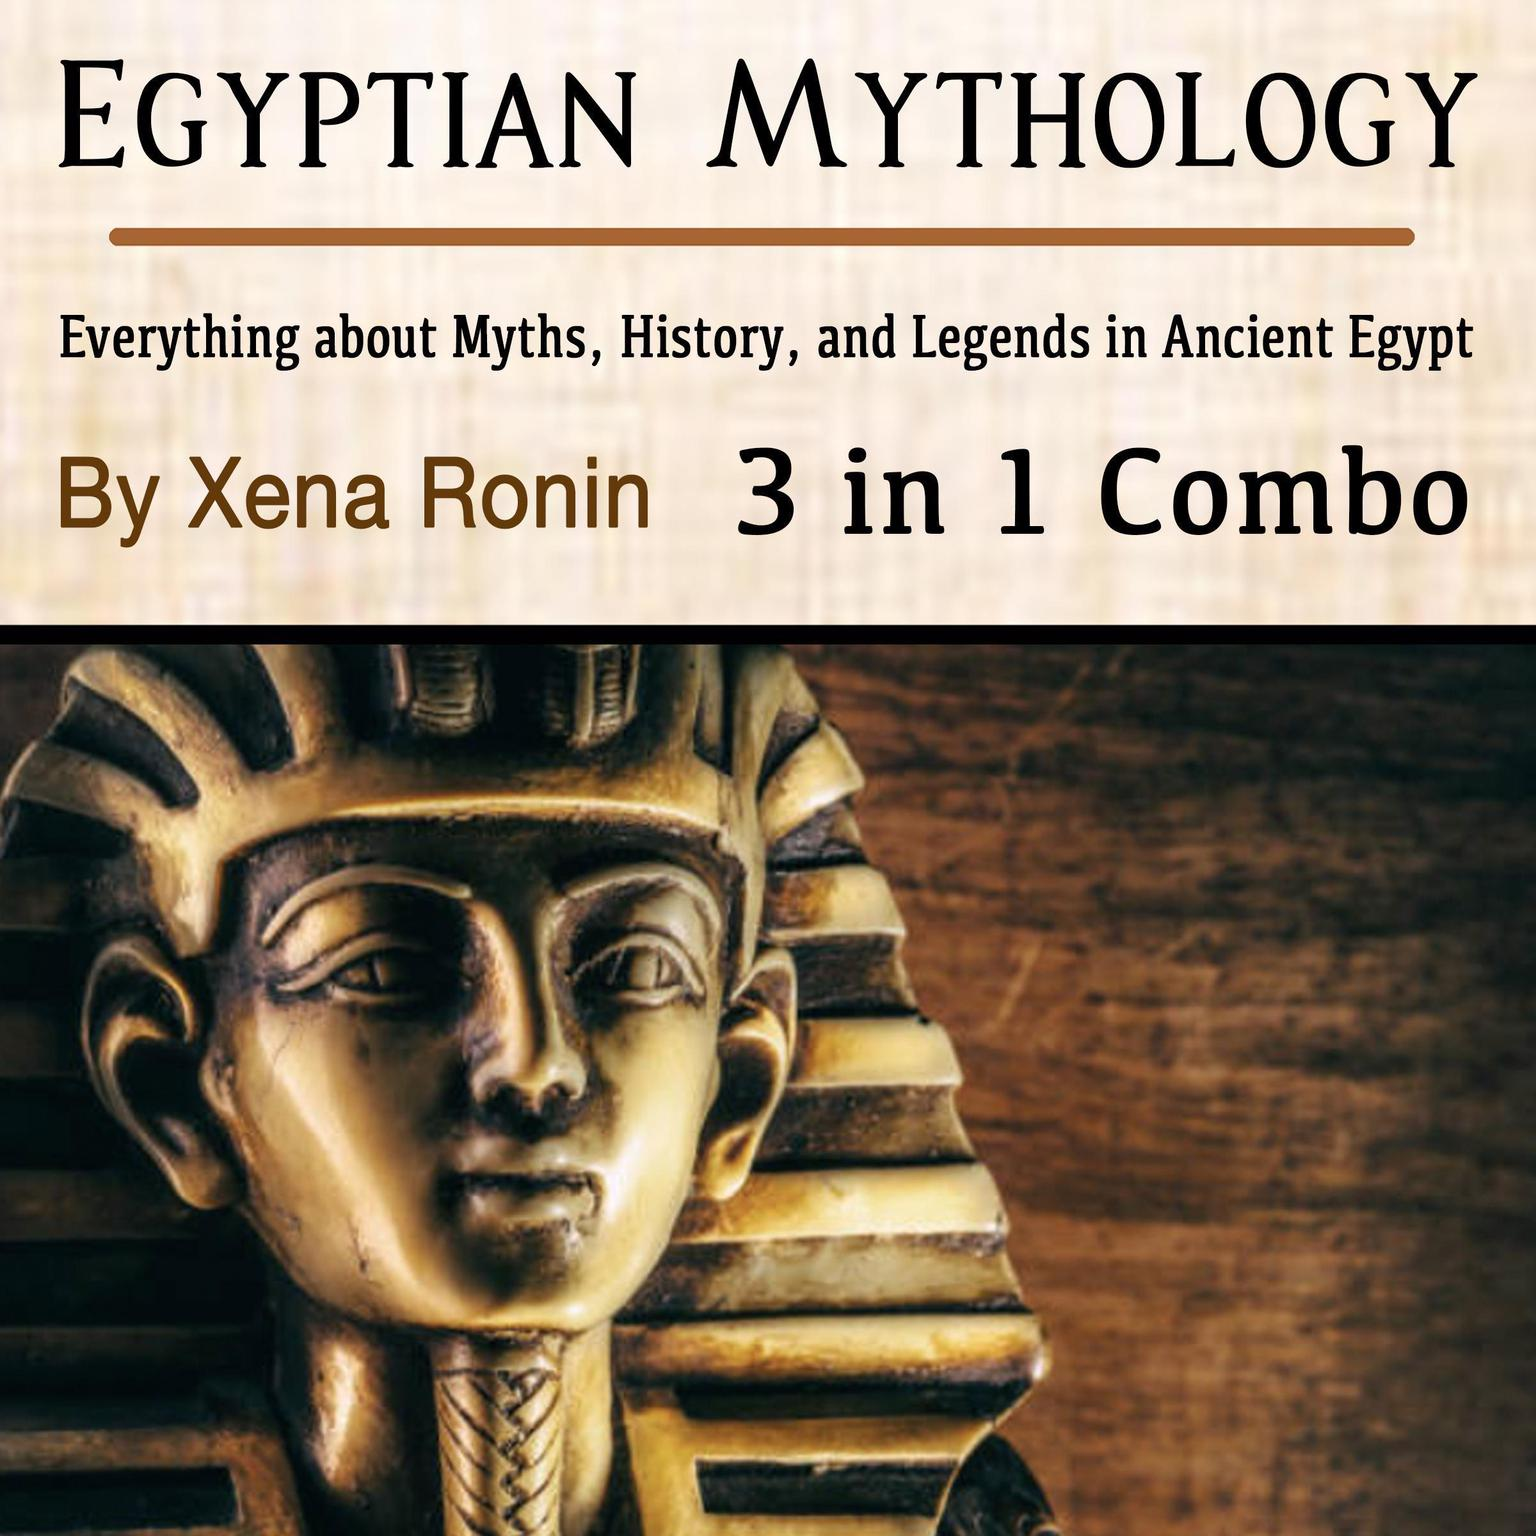 Egyptian Mythology: Everything about Myths, History, and Legends in Ancient Egypt (3 in 1 Combo) Audiobook, by Xena Ronin